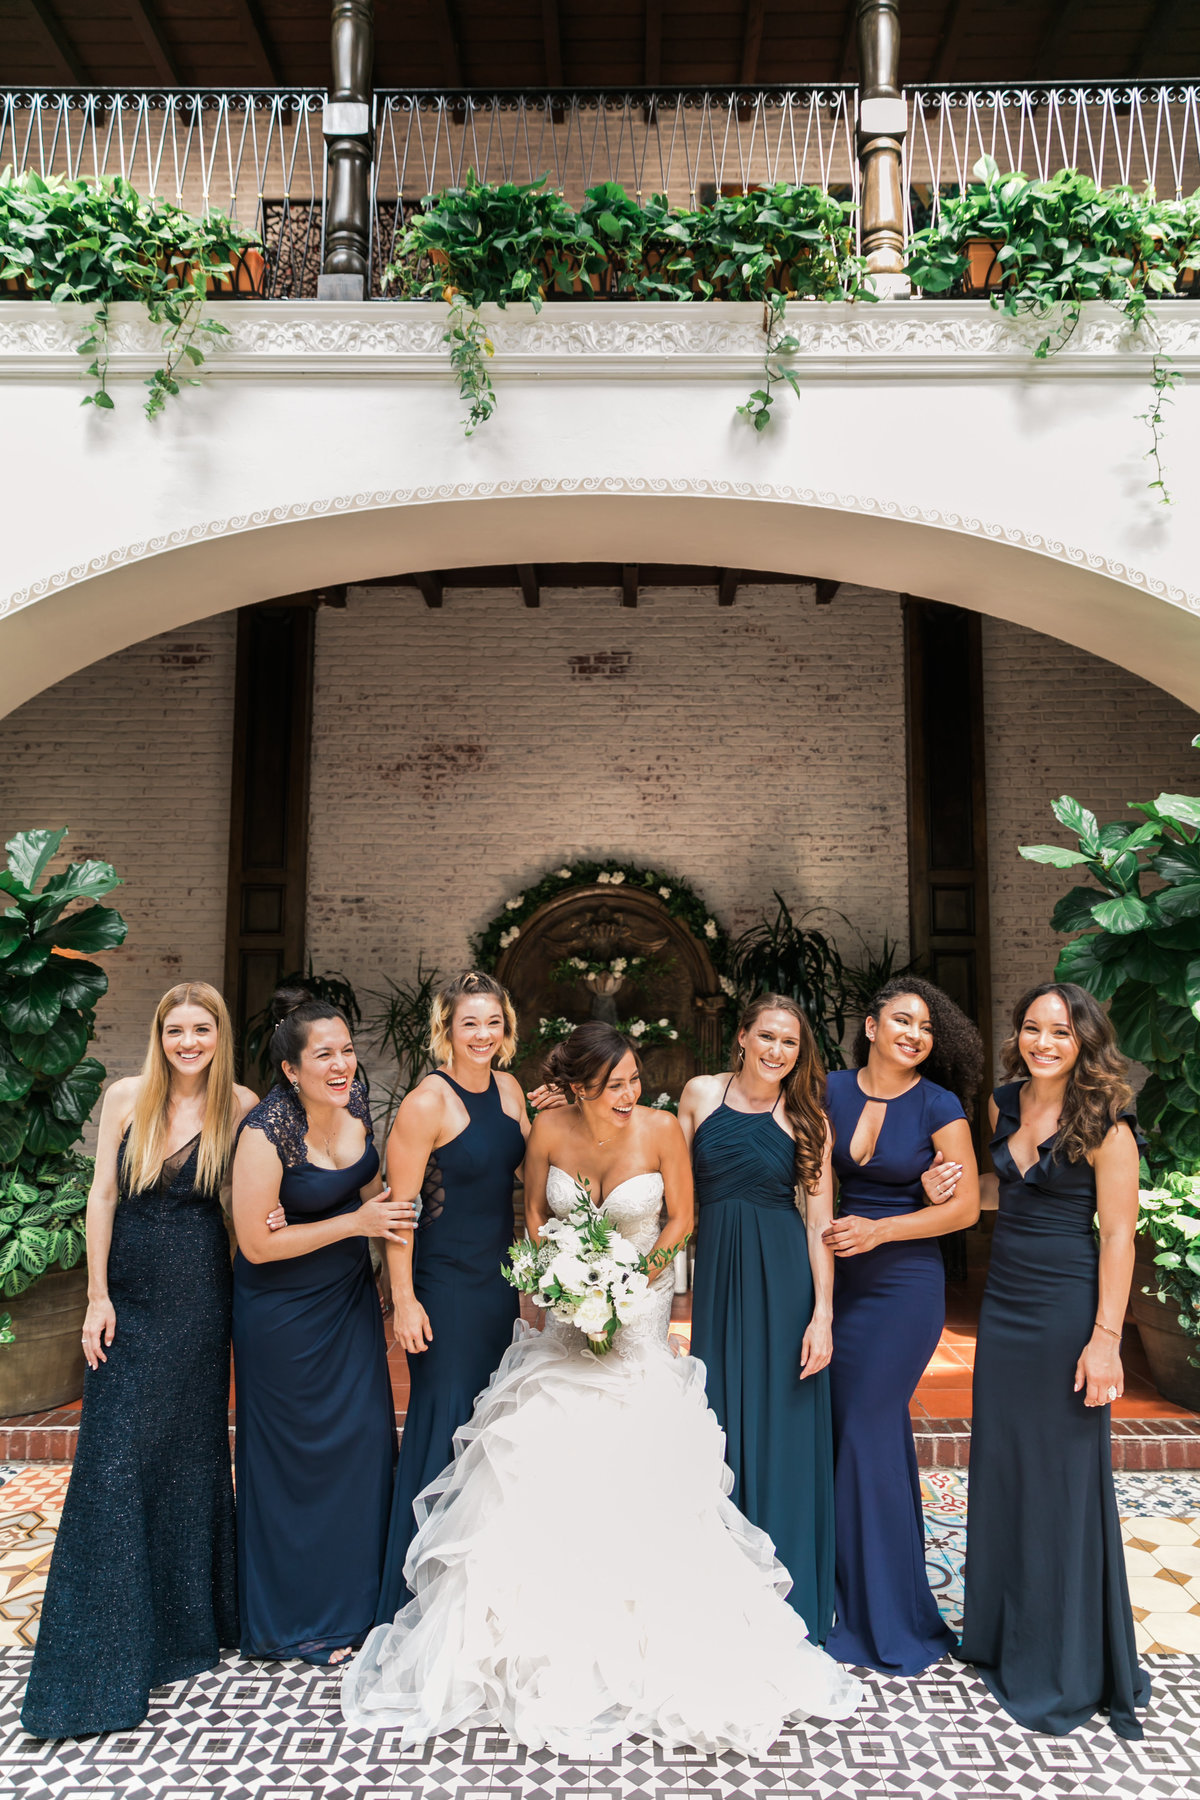 Ebell_Los_Angeles_Malcolm_Smith_NFL_Navy_Brass_Wedding_Valorie_Darling_Photography - 29 of 122